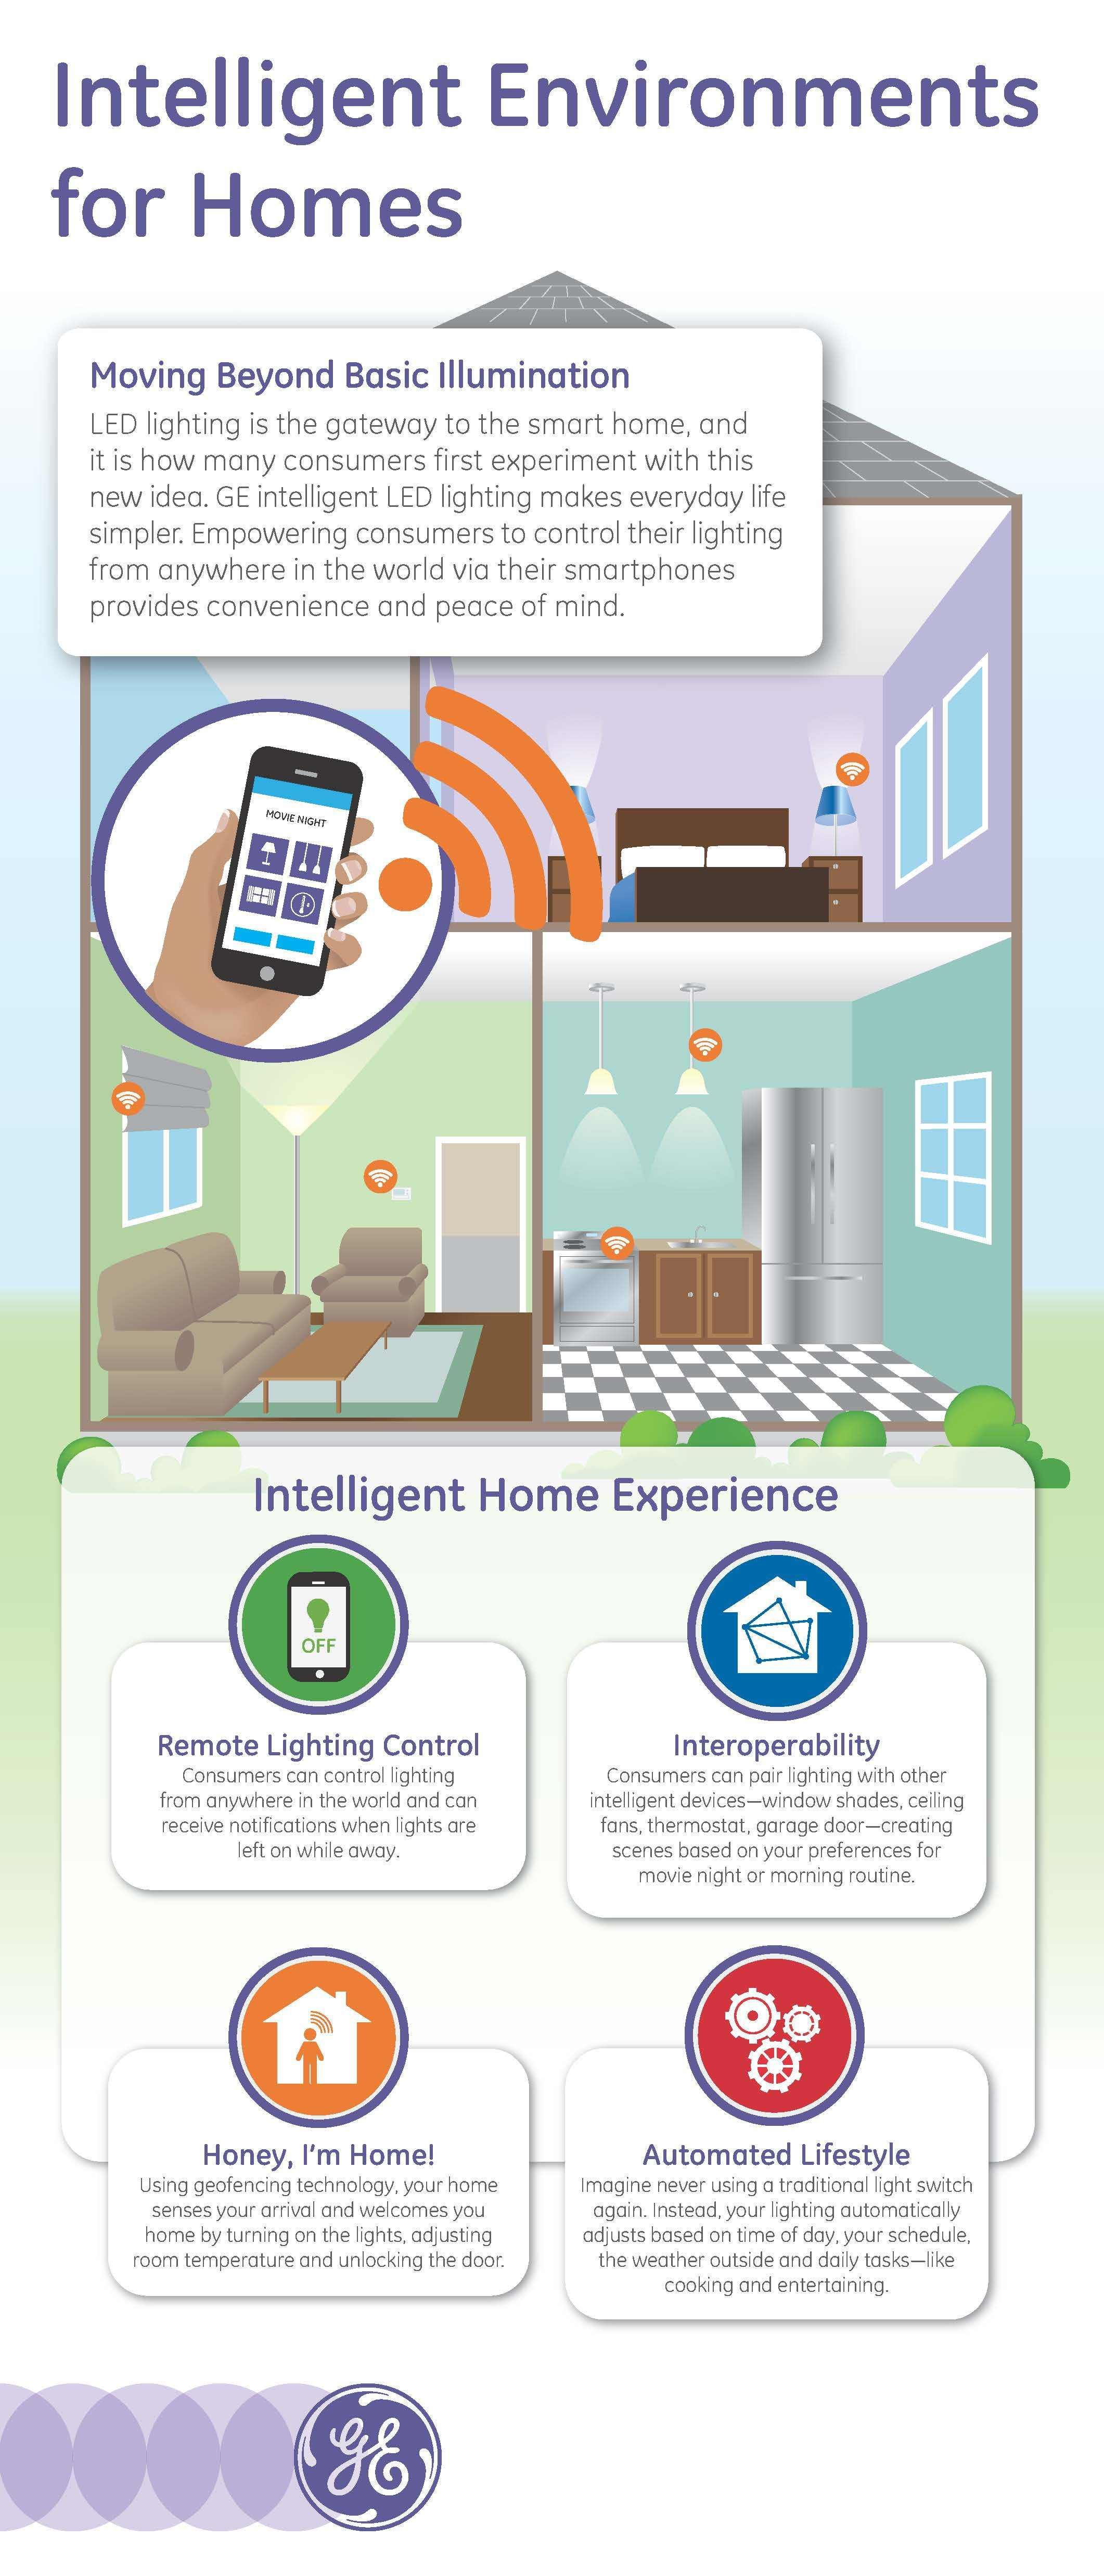 GE Intelligent LED Lighting Connects with Apple® HomeKit Ecosystem ...